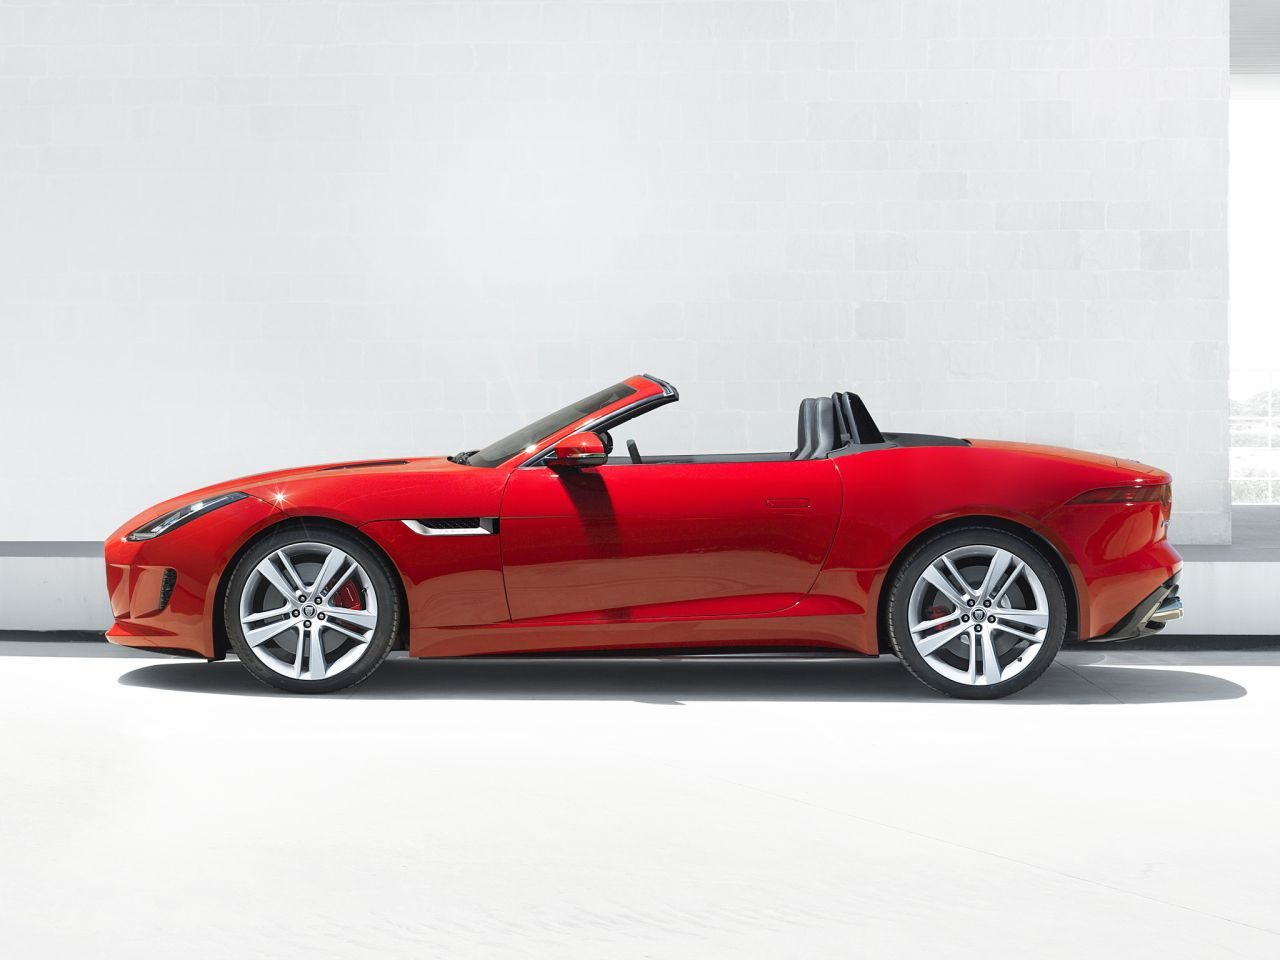 Jaguar-F-Type-2013-01.jpg